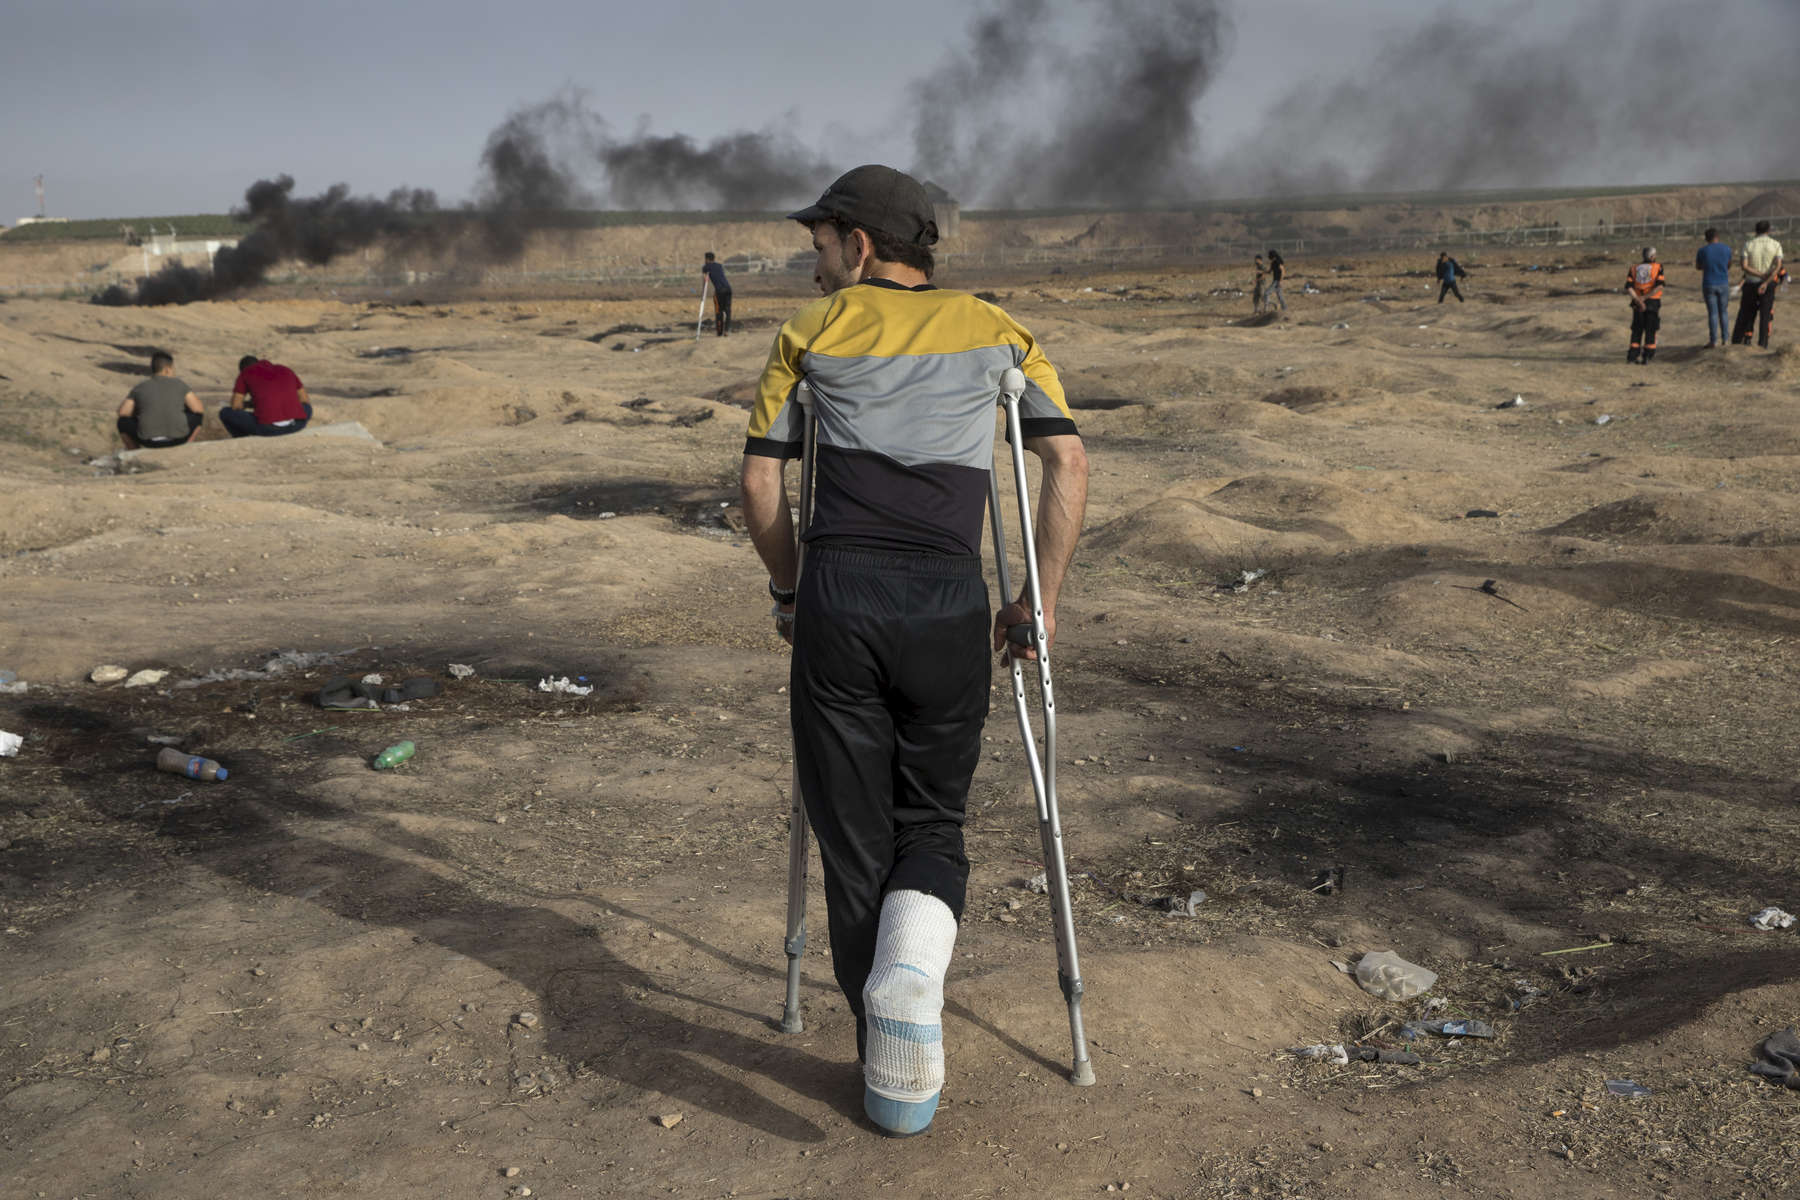 GAZA CITY, GAZA STRIP- MAY 25,2018: An injured protester is seen at the site near the Israel-Gaza border  on May 25,2018 in Gaza city, Gaza strip. At least 110 Palestinians were killed between March 30-May 15th. According to the International Committee of the Red Cross (ICRC), 13,000 Palestinians were wounded (as of June 19, 2018), the majority severely, with some 1,400 struck by three to five bullets. No Israelis were physically harmed during this time period, Israel's use of deadly force was condemned during the UN general assembly on June 13 th along with other human rights organizations. Everyone is well aware that Gaza's two million inhabitants are trapped in a cycle of violence and poverty, created by policies and political decisions on both sides. The problems and complications affecting Gaza today are overwhelming. The world, seemingly accustomed to the suffering of the Gazan people turns a blind eye. (Photo by Paula Bronstein )